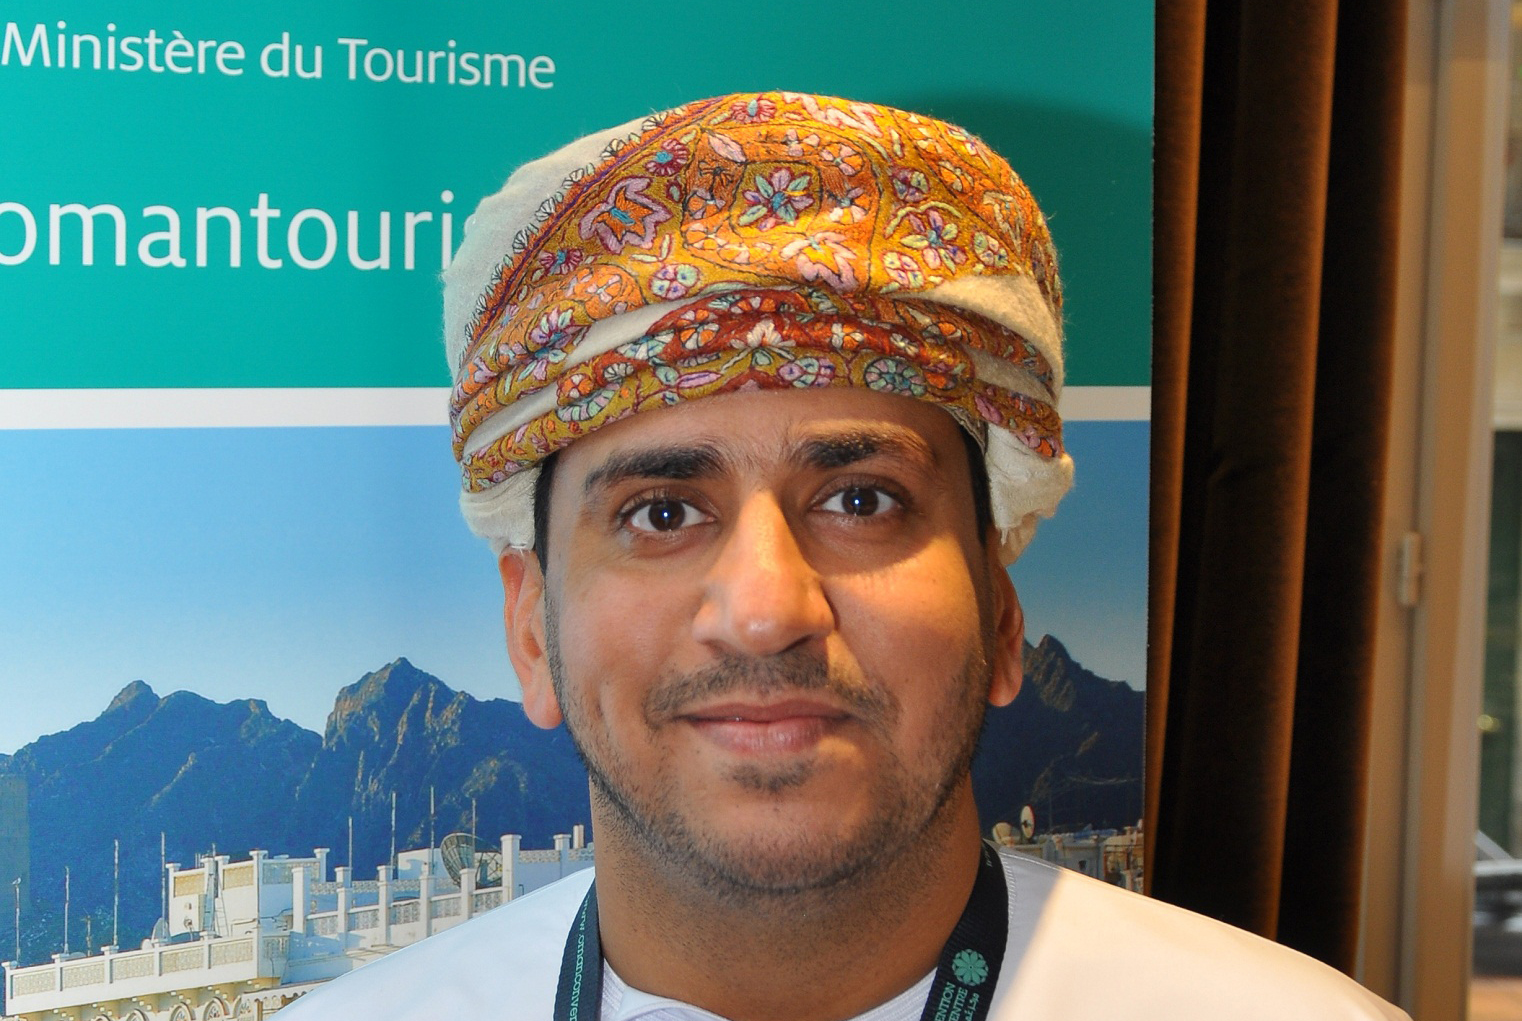 Ministry of Tourism establishes Oman Convention Bureau